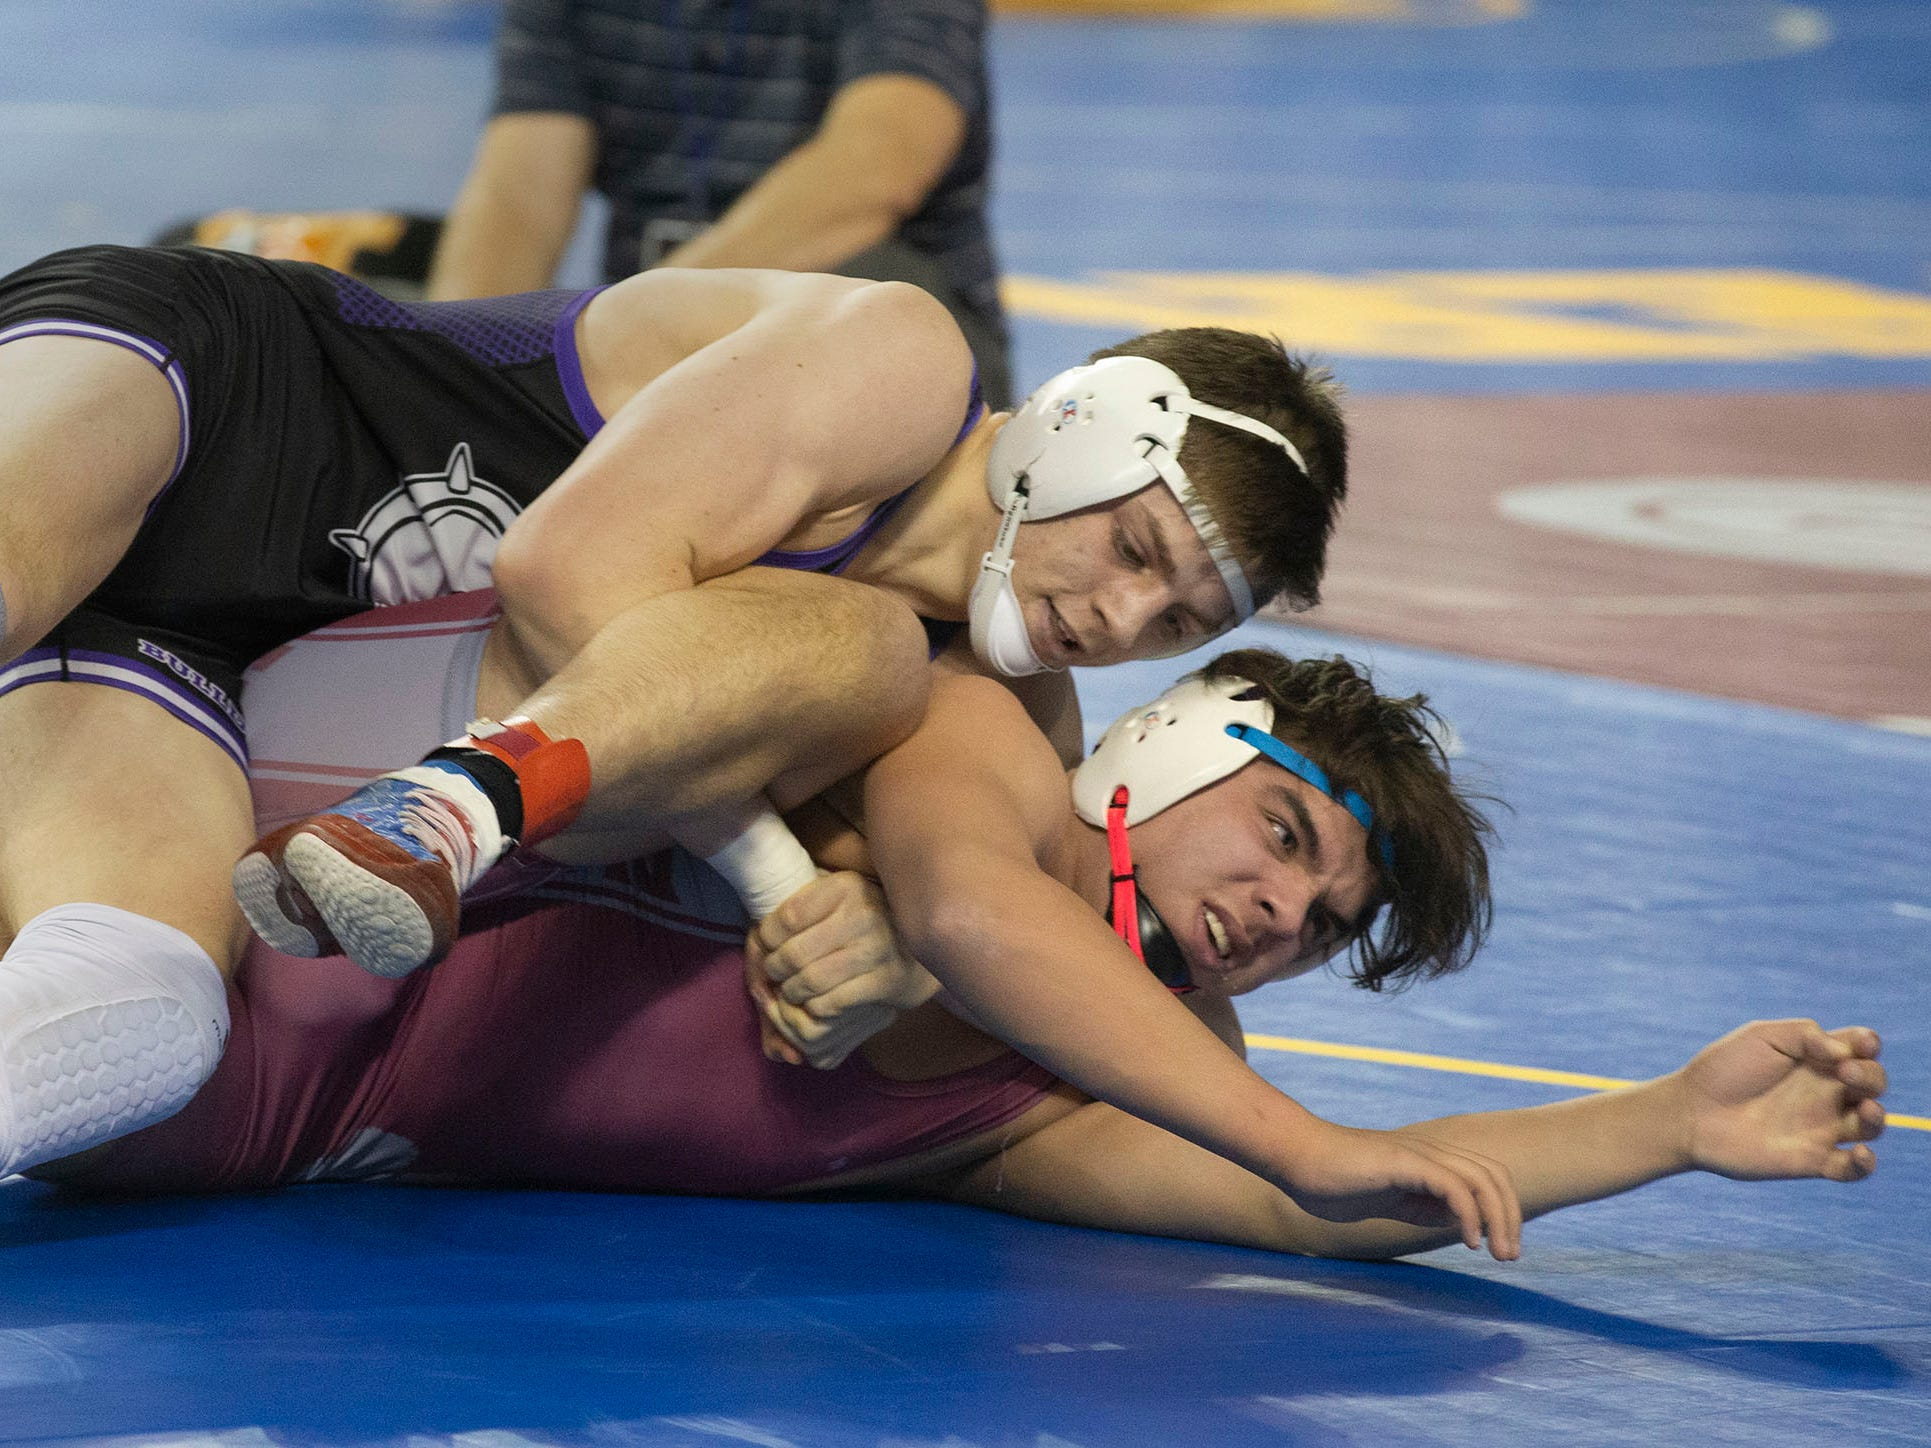 Rumson-Fair Haven's NickAddison pinned Bloomfield's Zach Andruchowitz in their 182 lbs. bout. NJSIAA State Wrestling opening rounds in Atlantic City, Thursday February 28, 2019